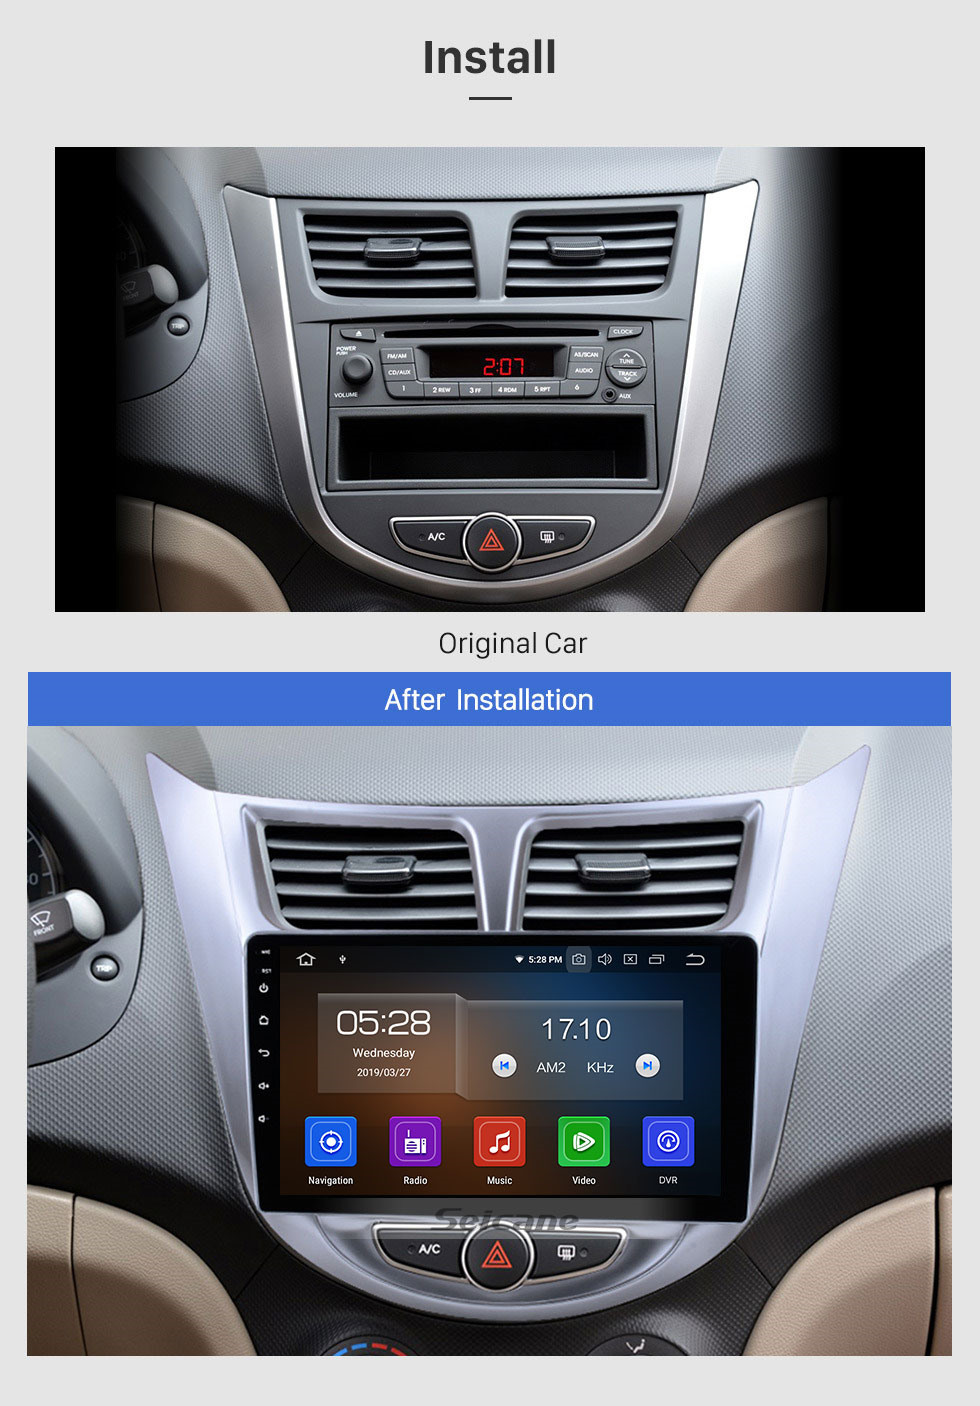 Seicane 9 Inch HD touchscreen Android 10.0 GPS Navigation system For 2011 2012 2013 HYUNDAI Verna with IPS Full Screen View DVR OBD II Bluetooth 3G/4G WiFi Video AUX Rear camera